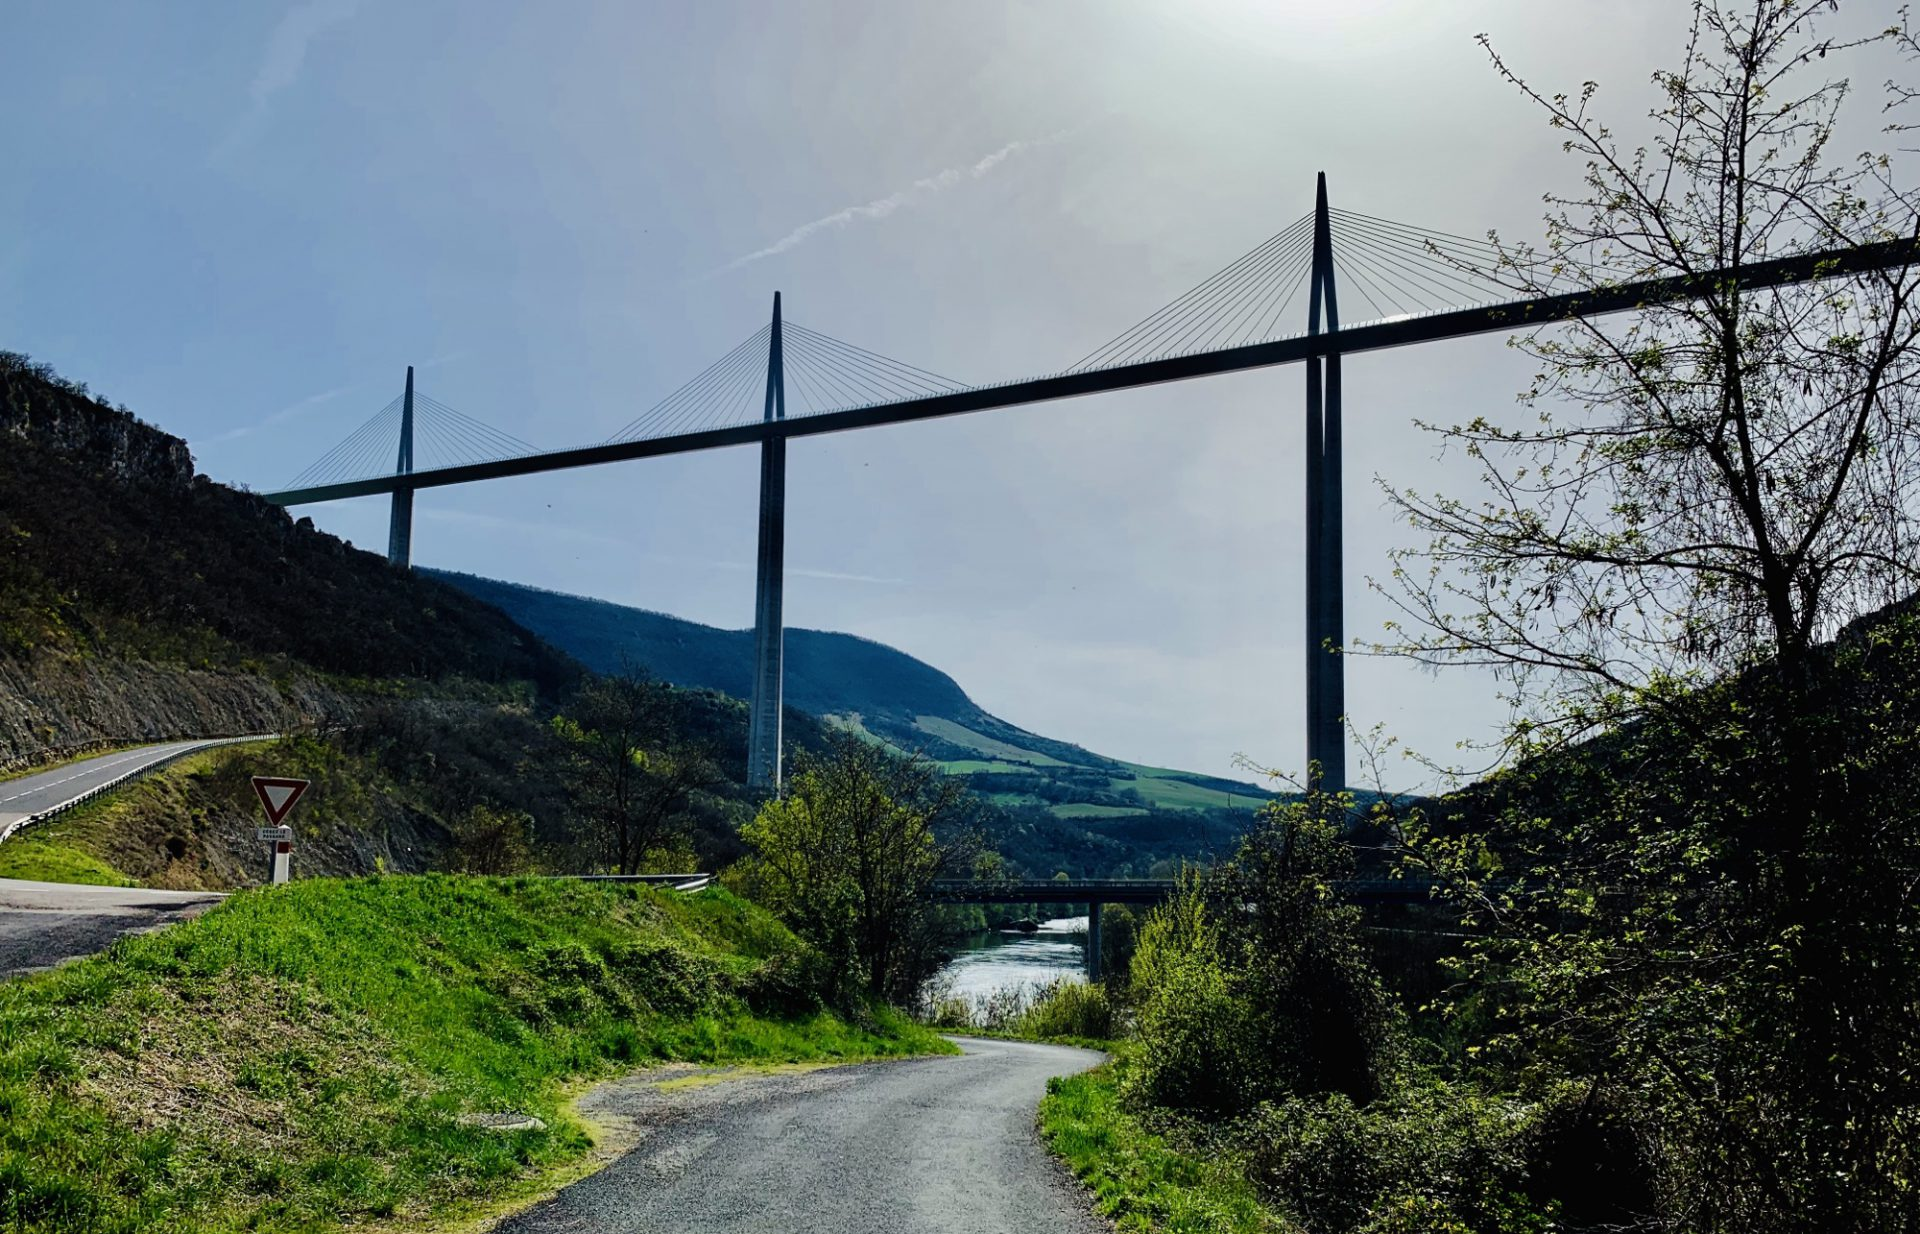 Giant Structures, Strange Ducks, Cold Water and All Things Sticky in Millau